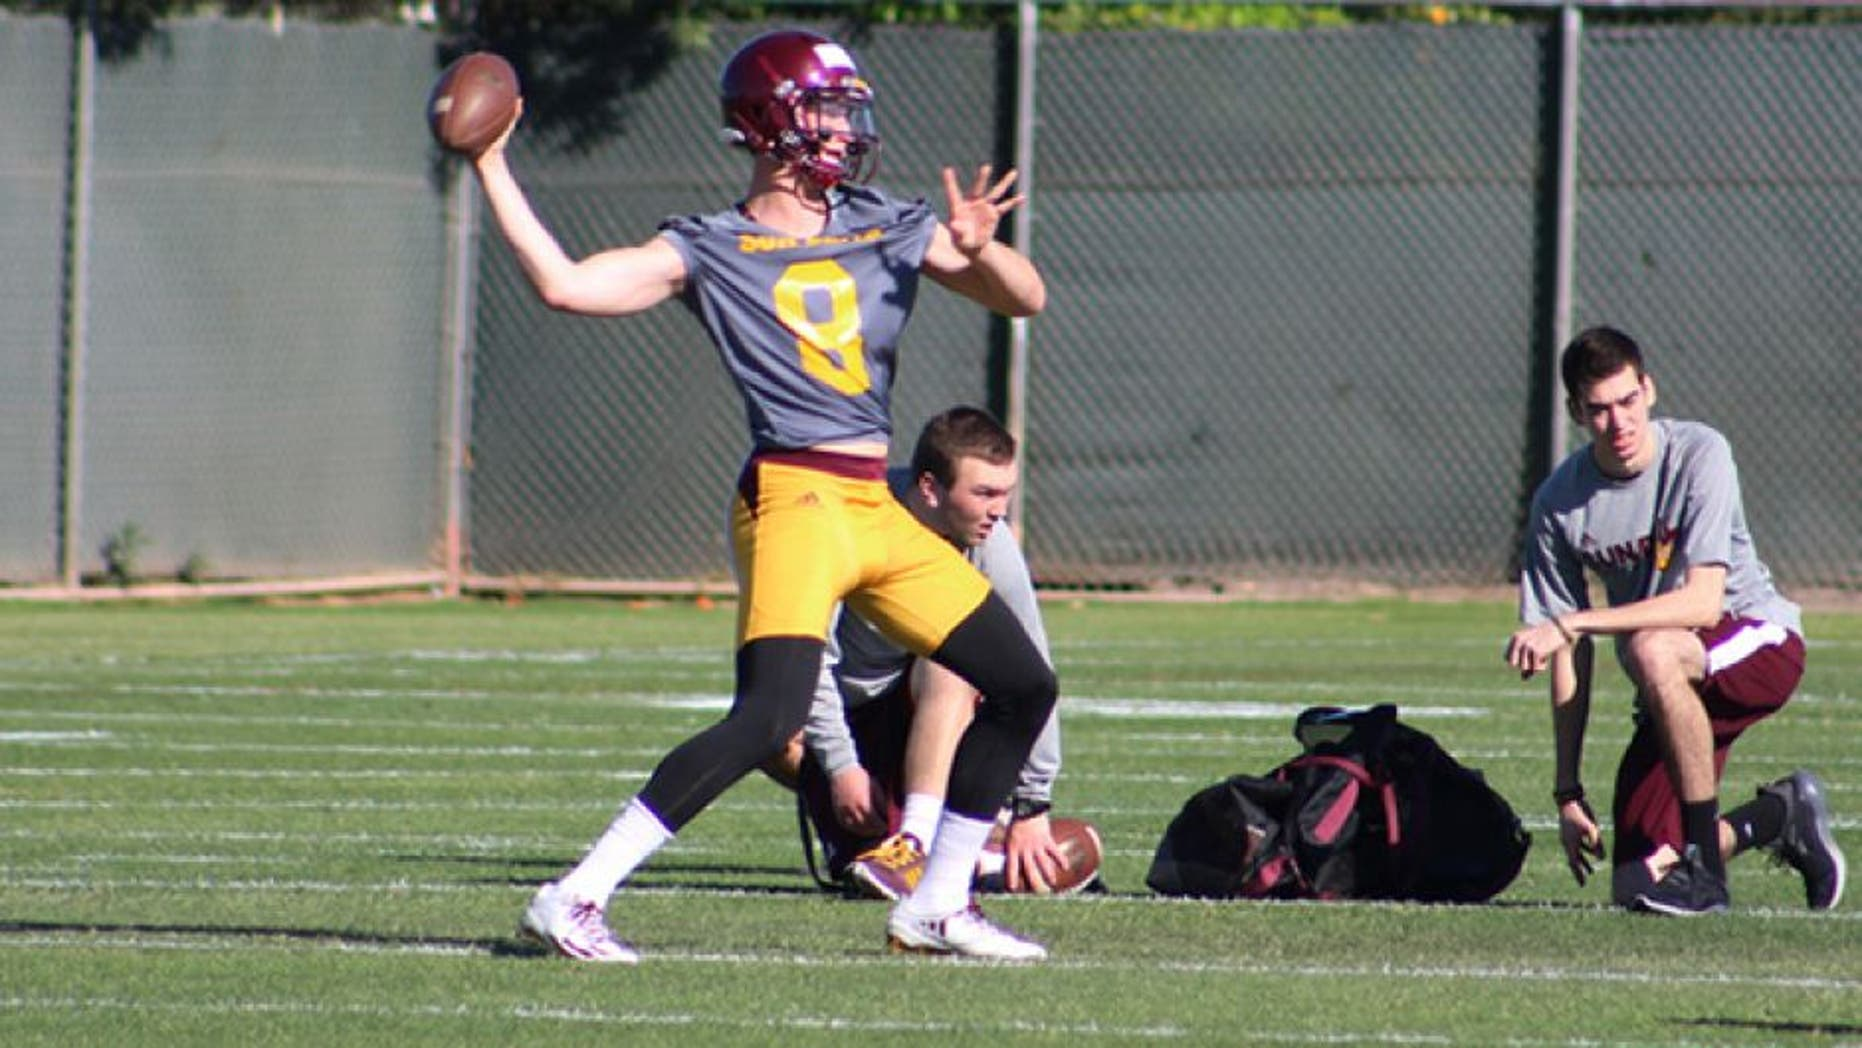 Arizona State University quarterback Blake Barnett pulls back for the throw during spring workouts on Tuesday, March 14, 2017, in Tempe, Ariz. (Photo by Tyler Drake/ Cronkite News)